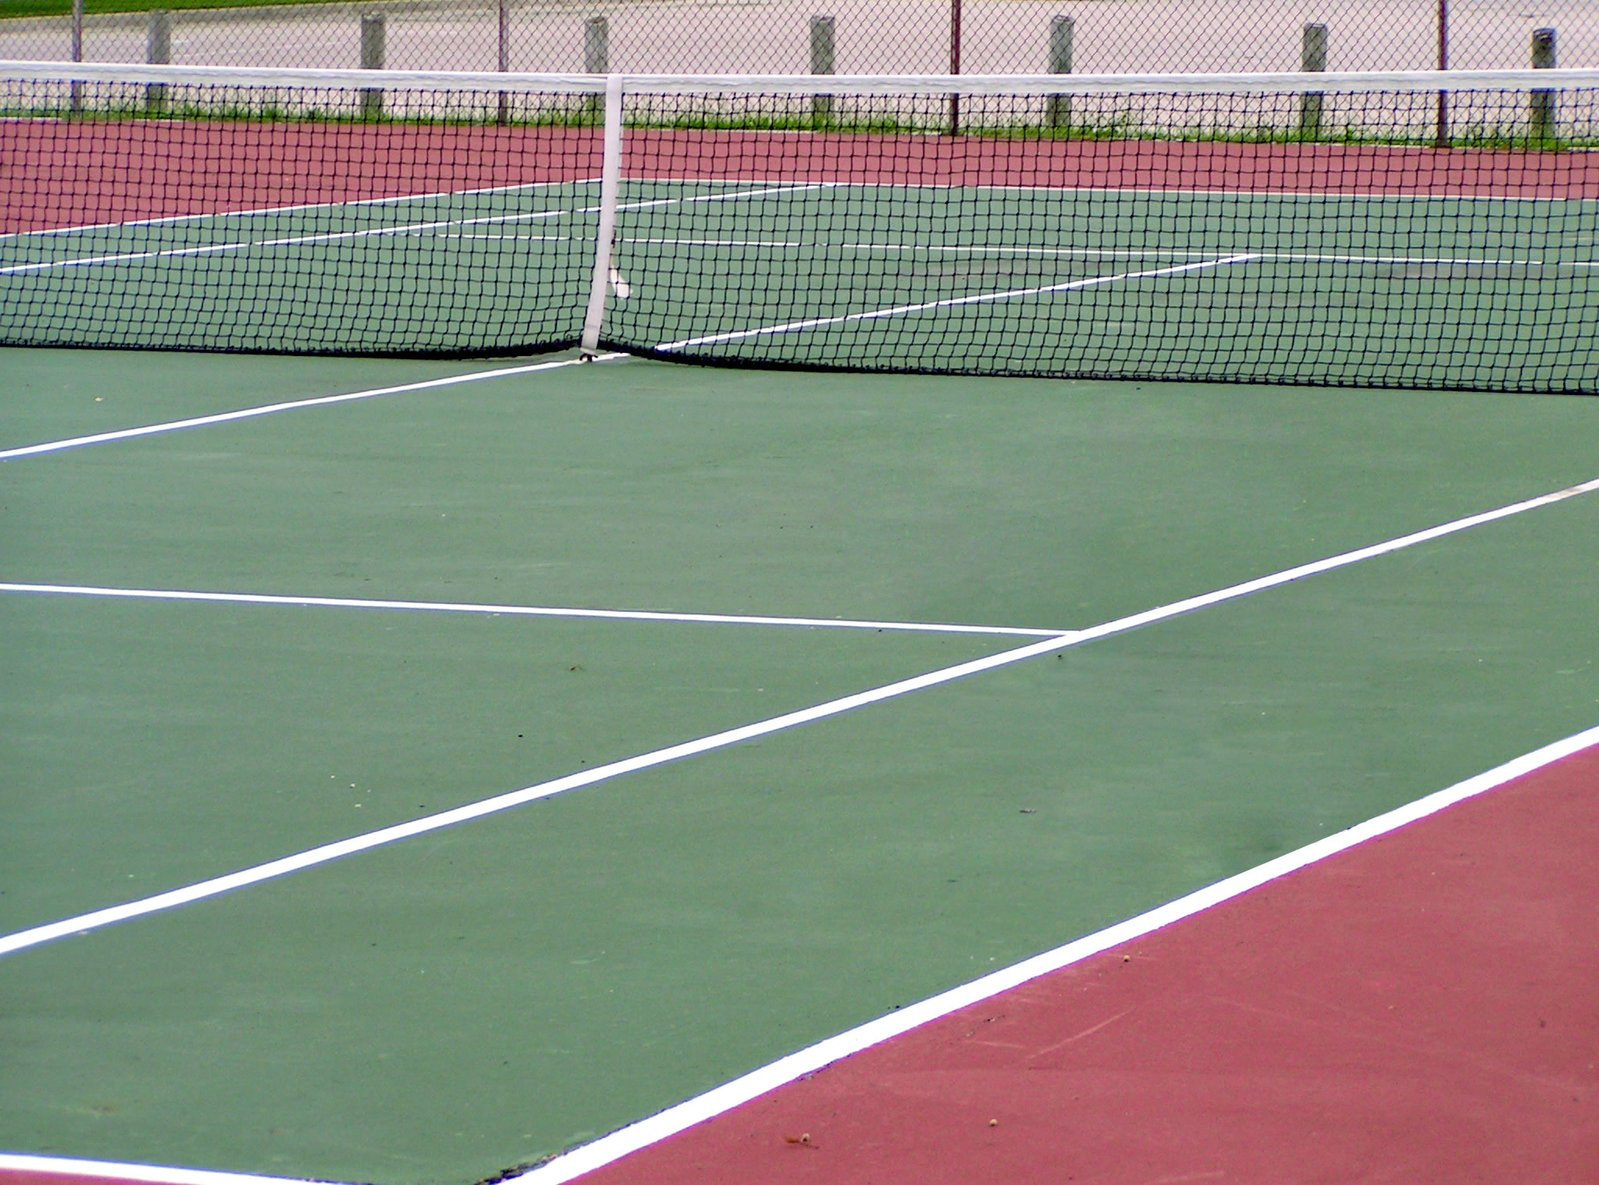 Free Old Tennis Court 1 Stock Photo - FreeImages.com